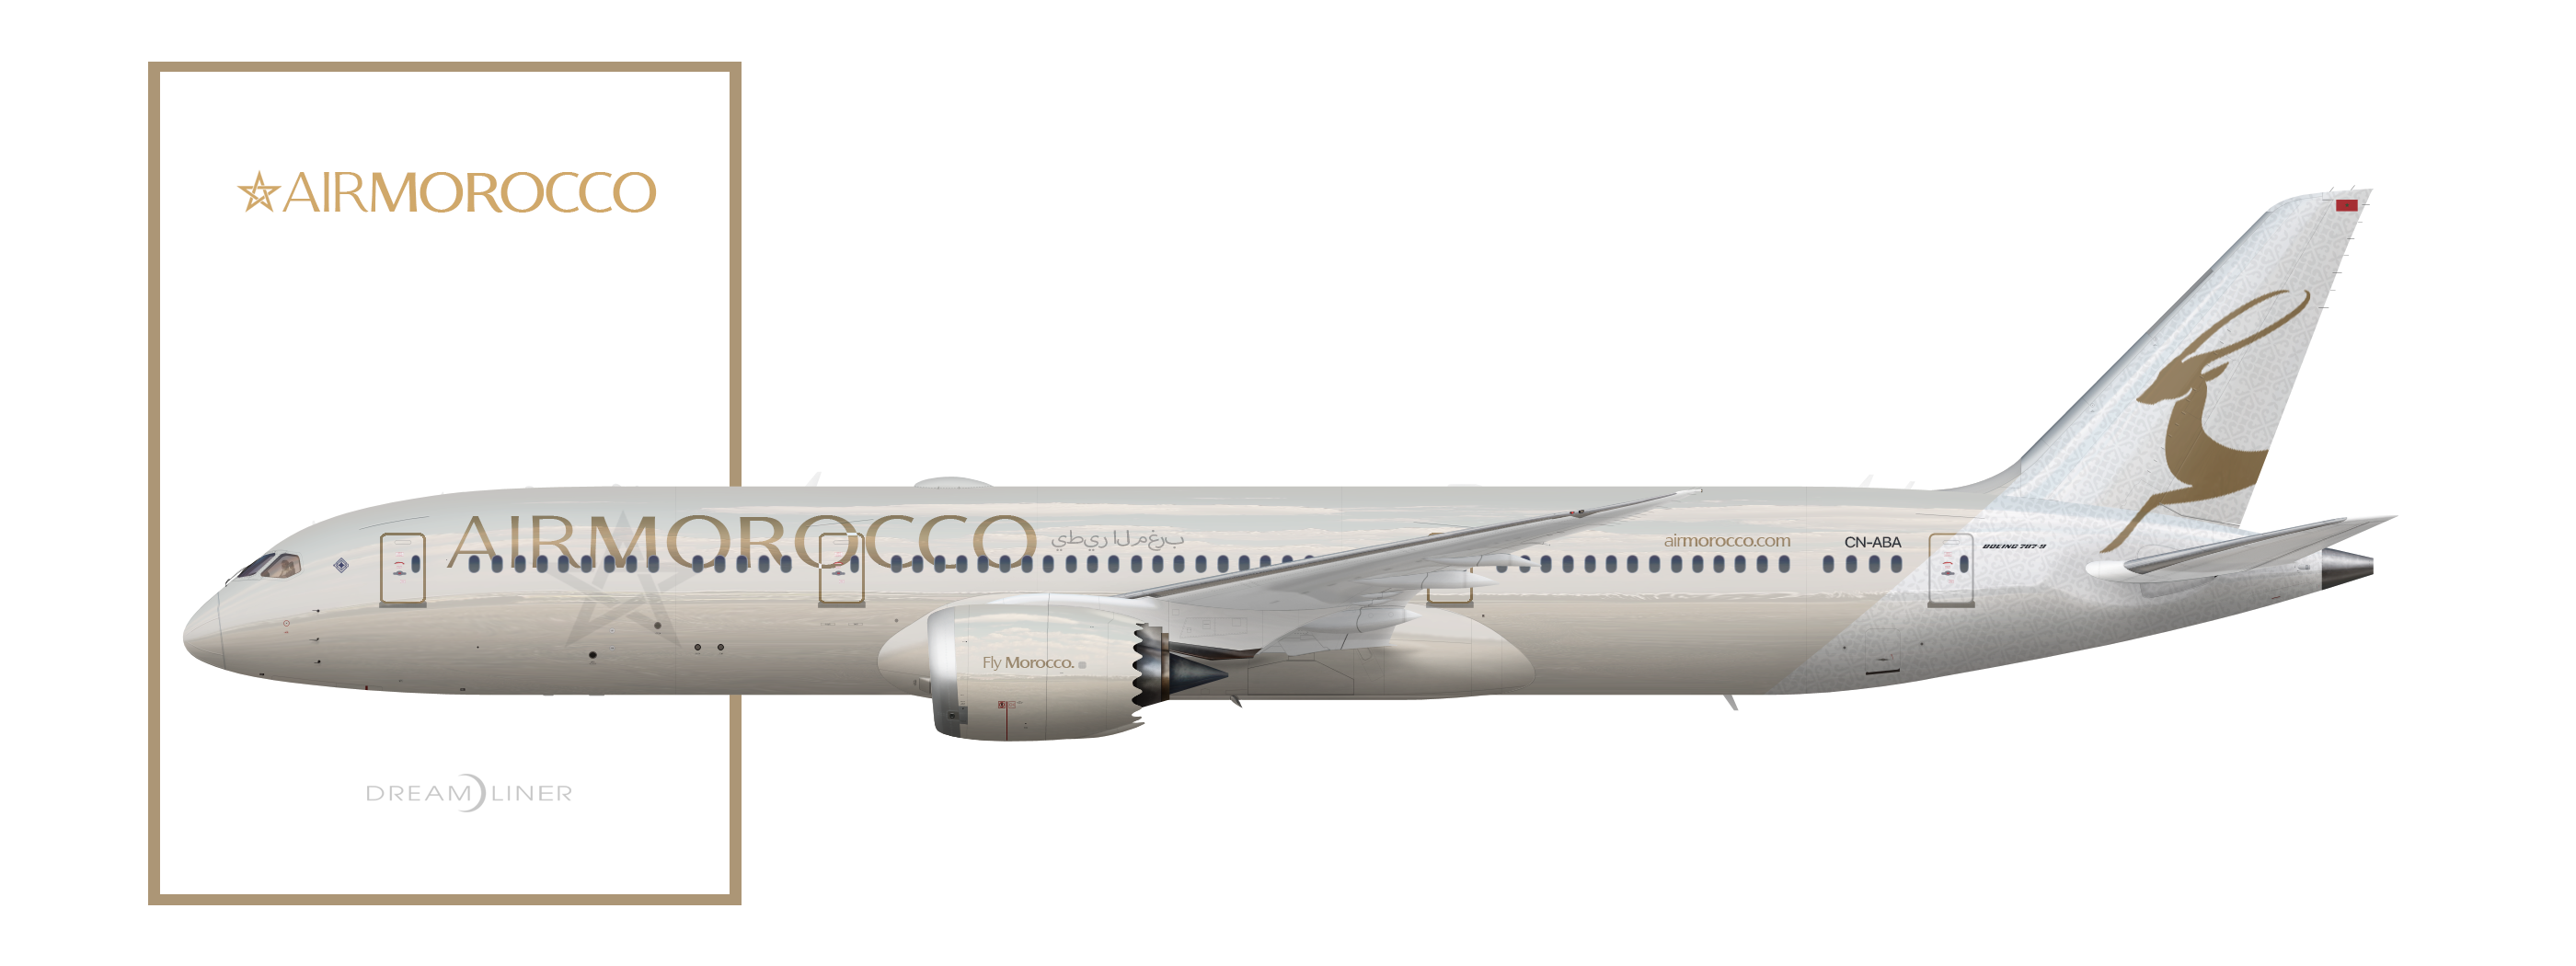 airmorocco_787-9.png